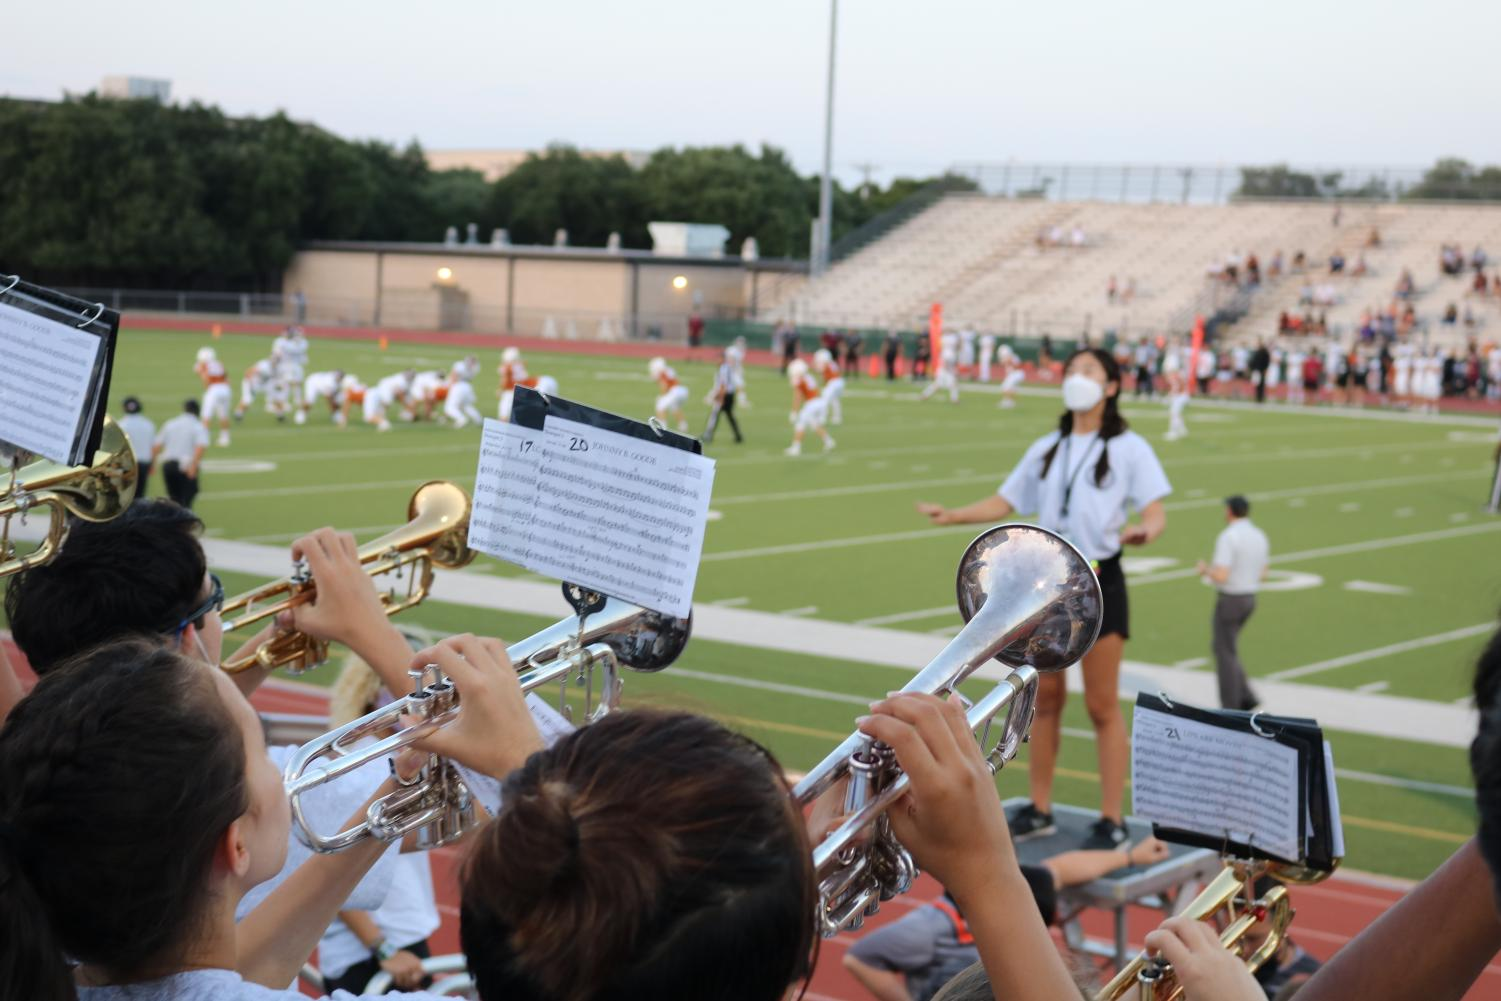 Human+Again%3A+Westwood+Warrior+Marching+Band+Carries+on+Timeless+Legacy